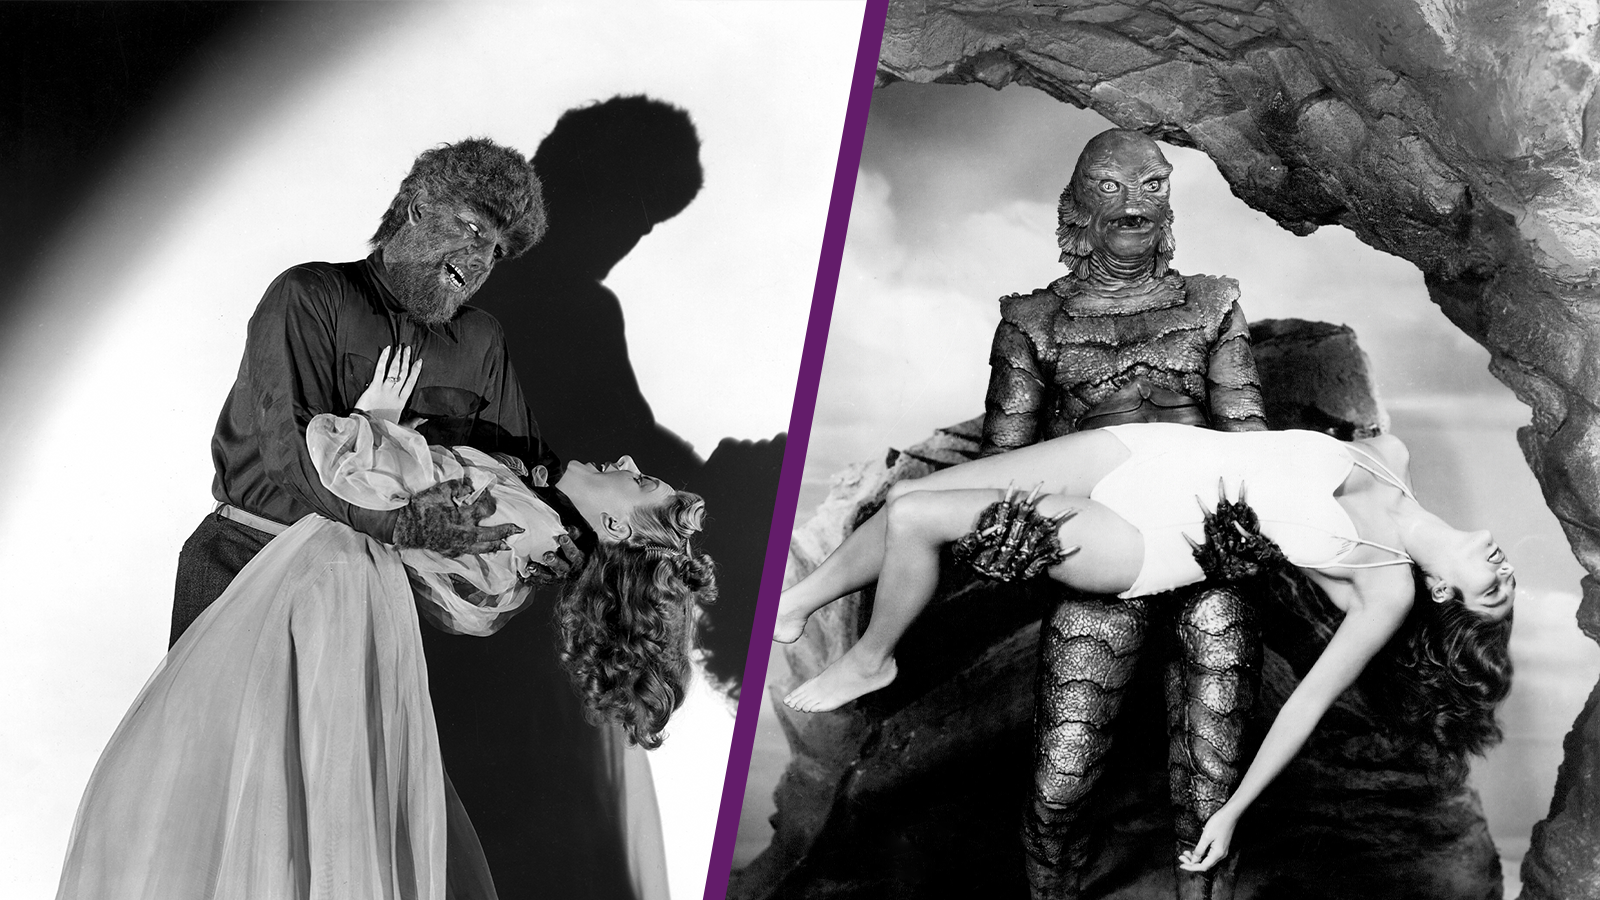 The Wolf Man & Creature from the Black Lagoon in 3D (Double Feature)